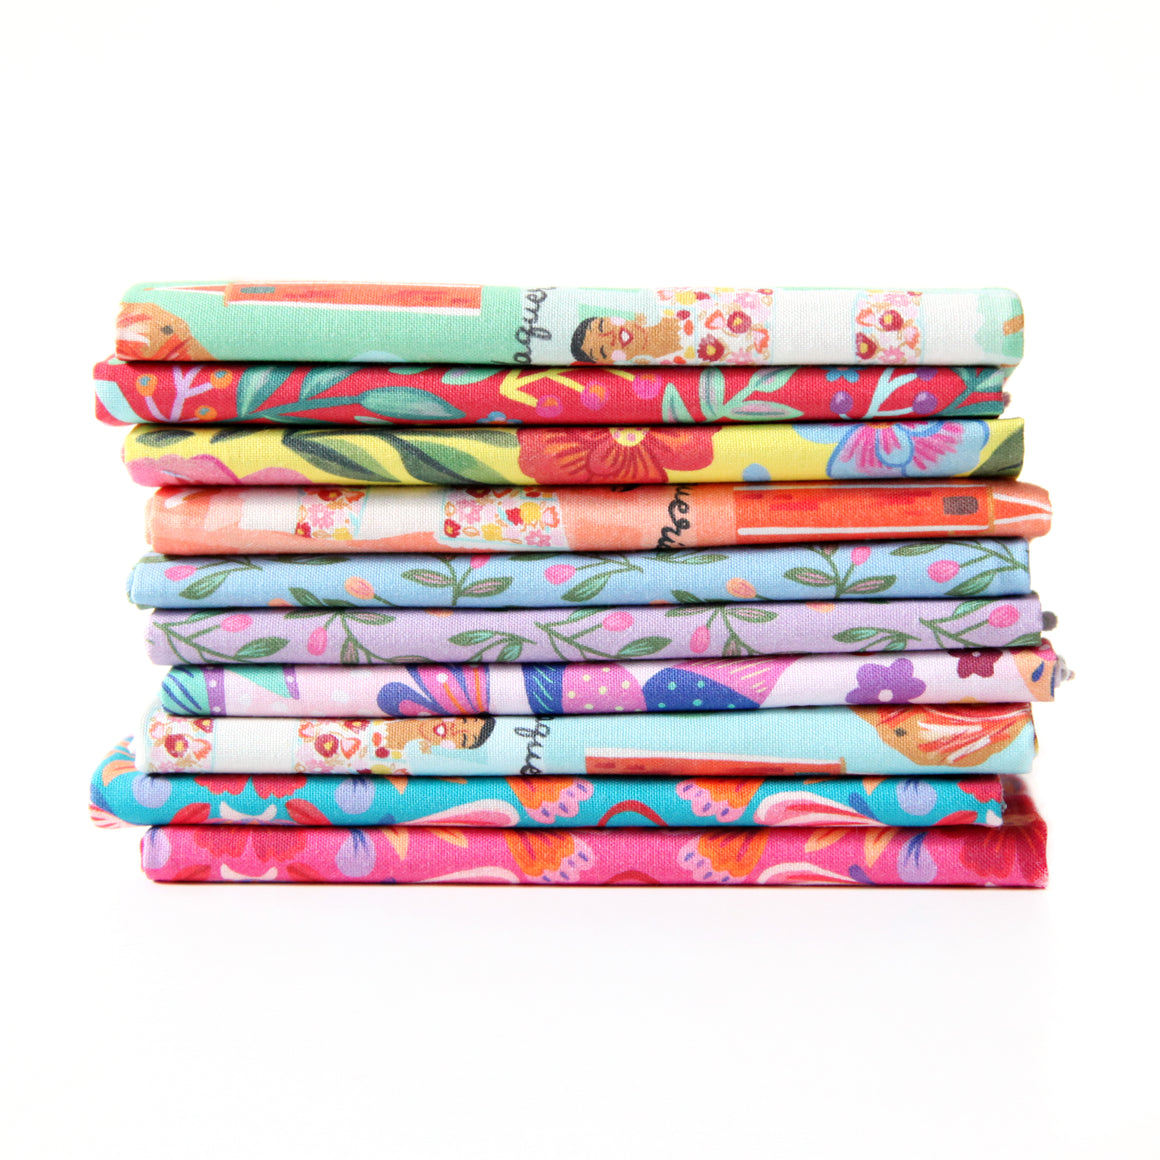 Viva Mexico Fat Quarter Bundle - 120FQVM